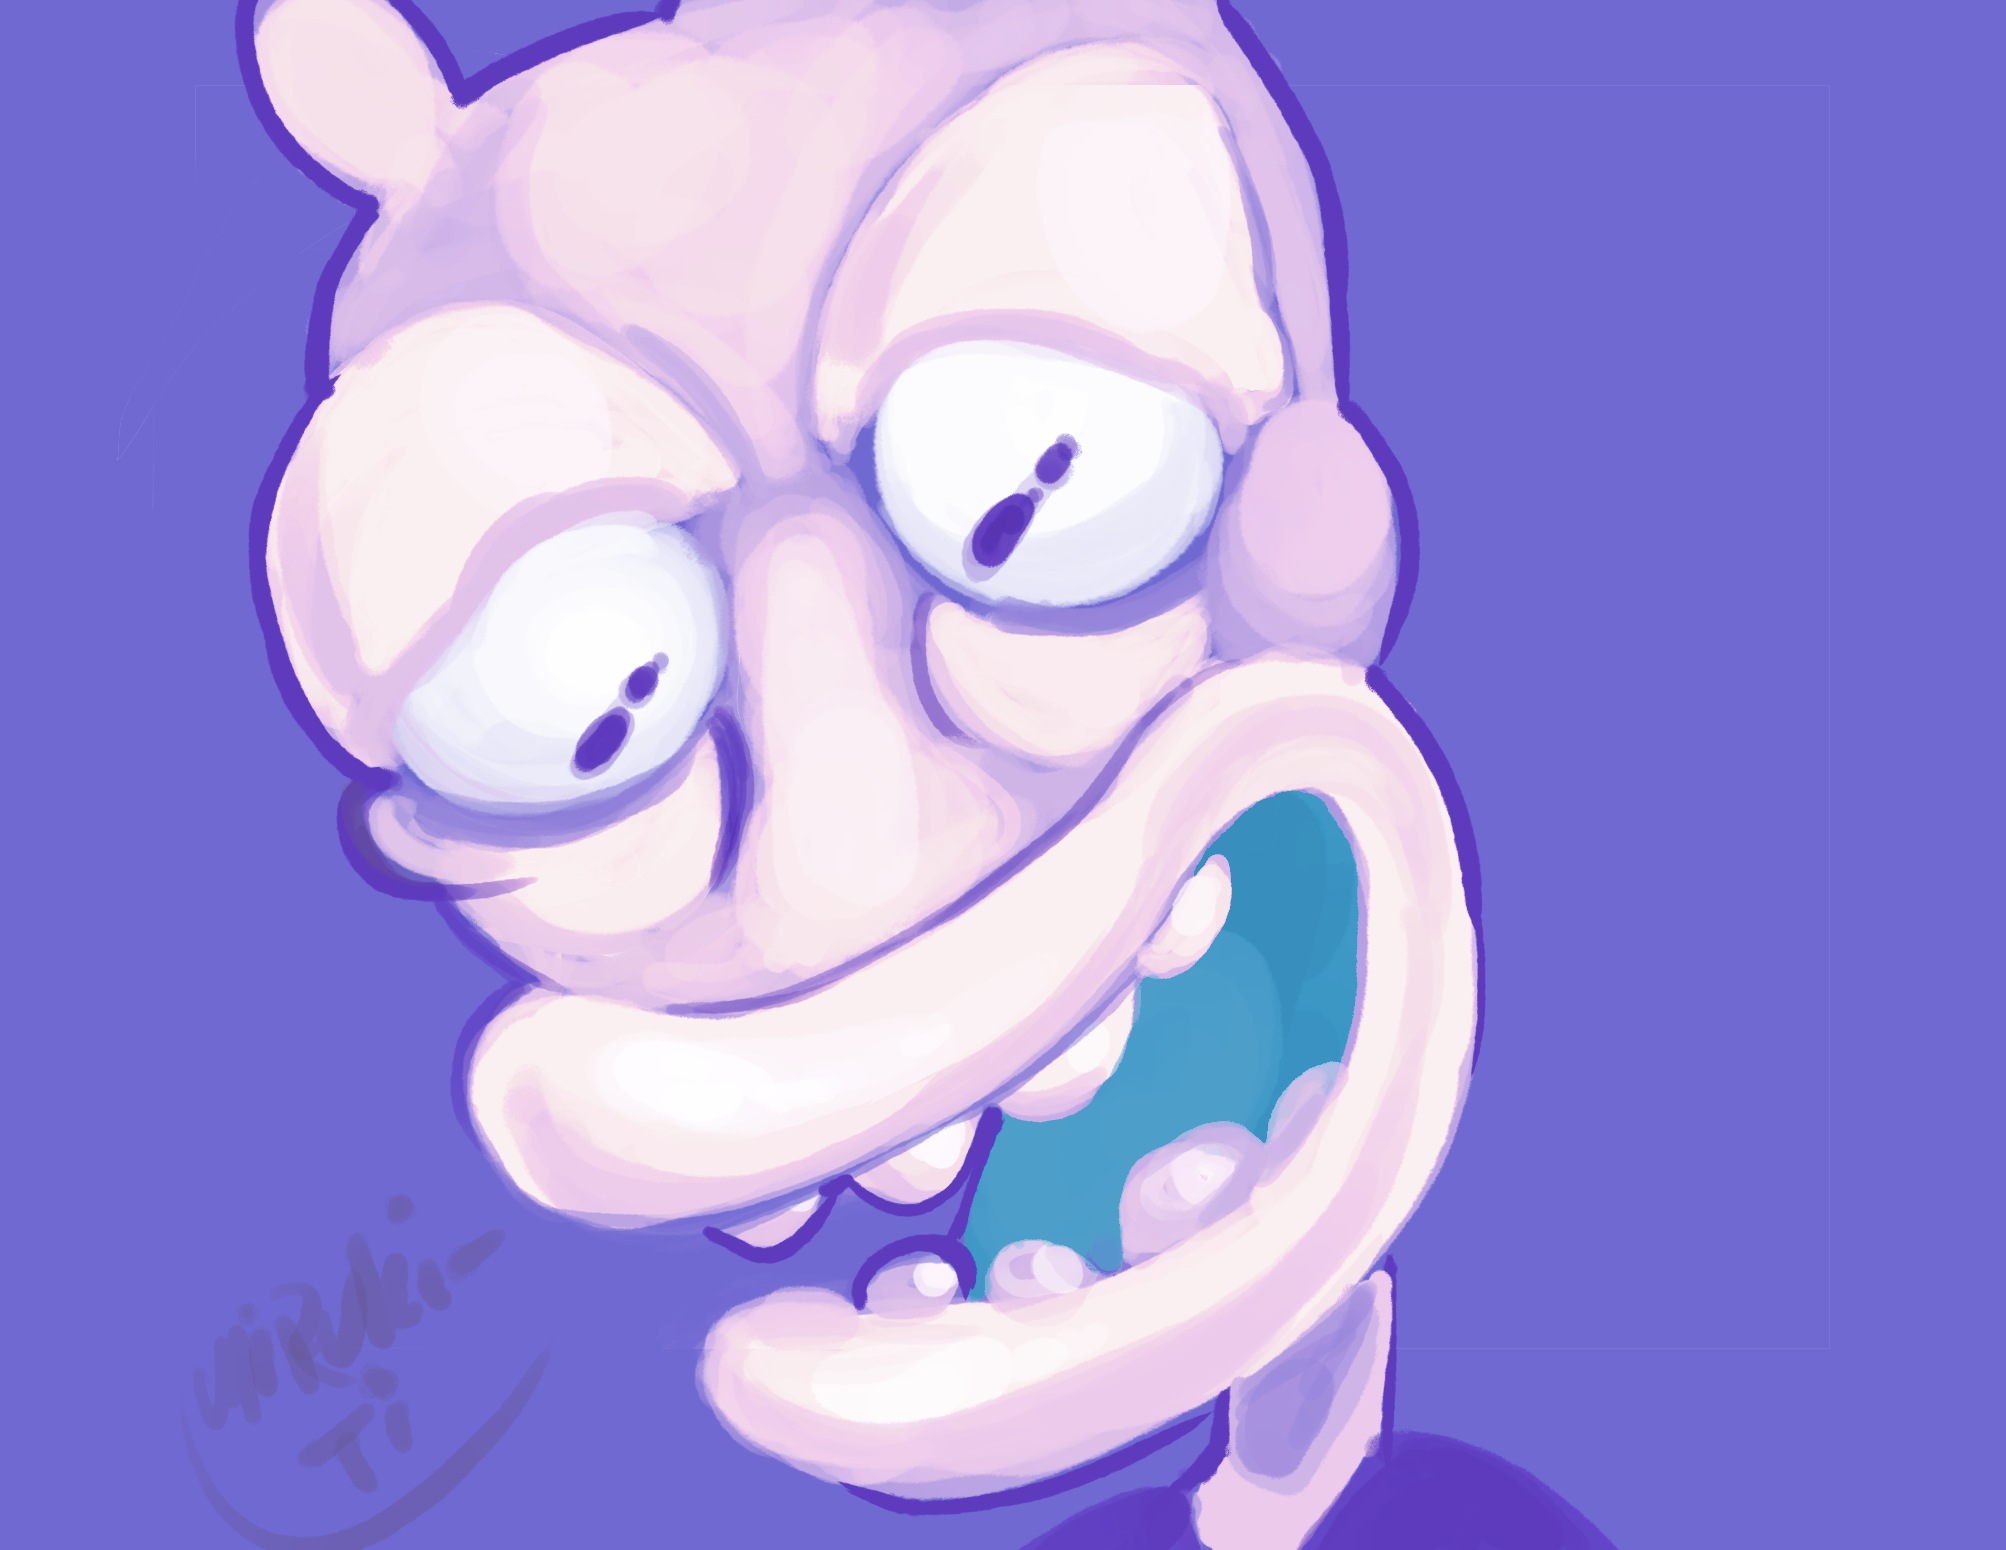 Creepy ding dong by Miruki-Ti on Newgrounds